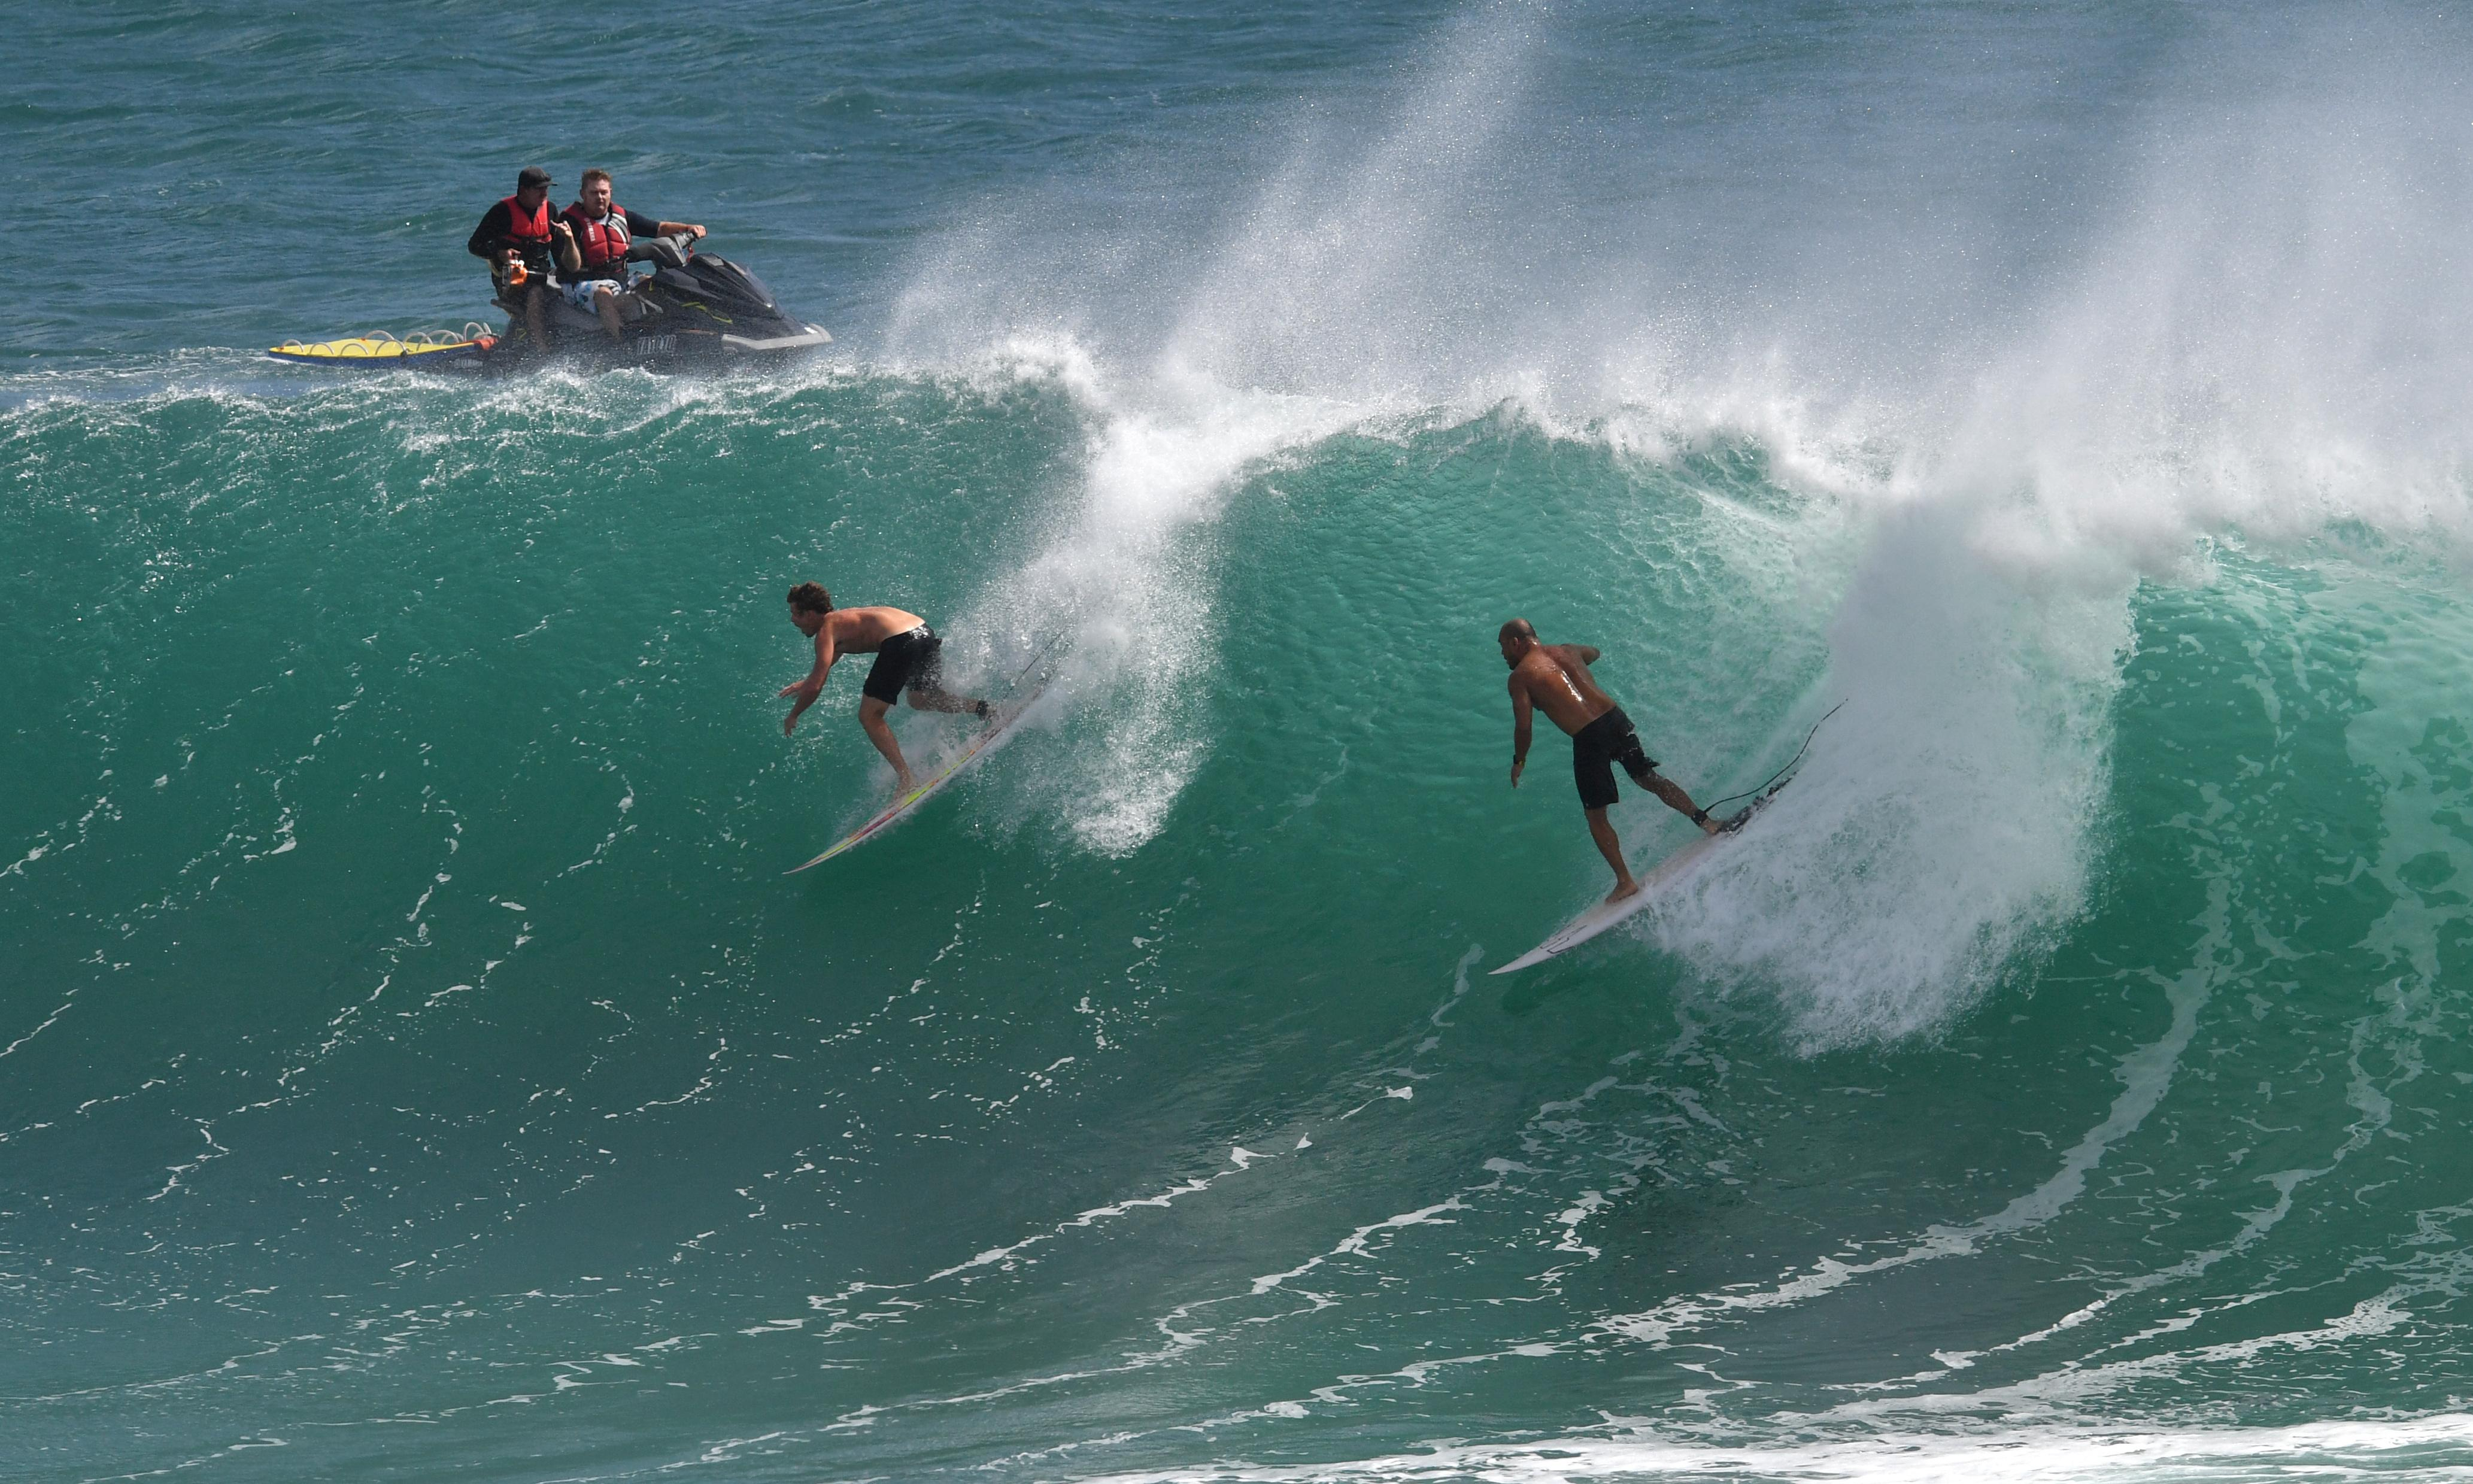 Cyclone Oma: surfers enjoy wild swell but downgraded storm could yet intensify